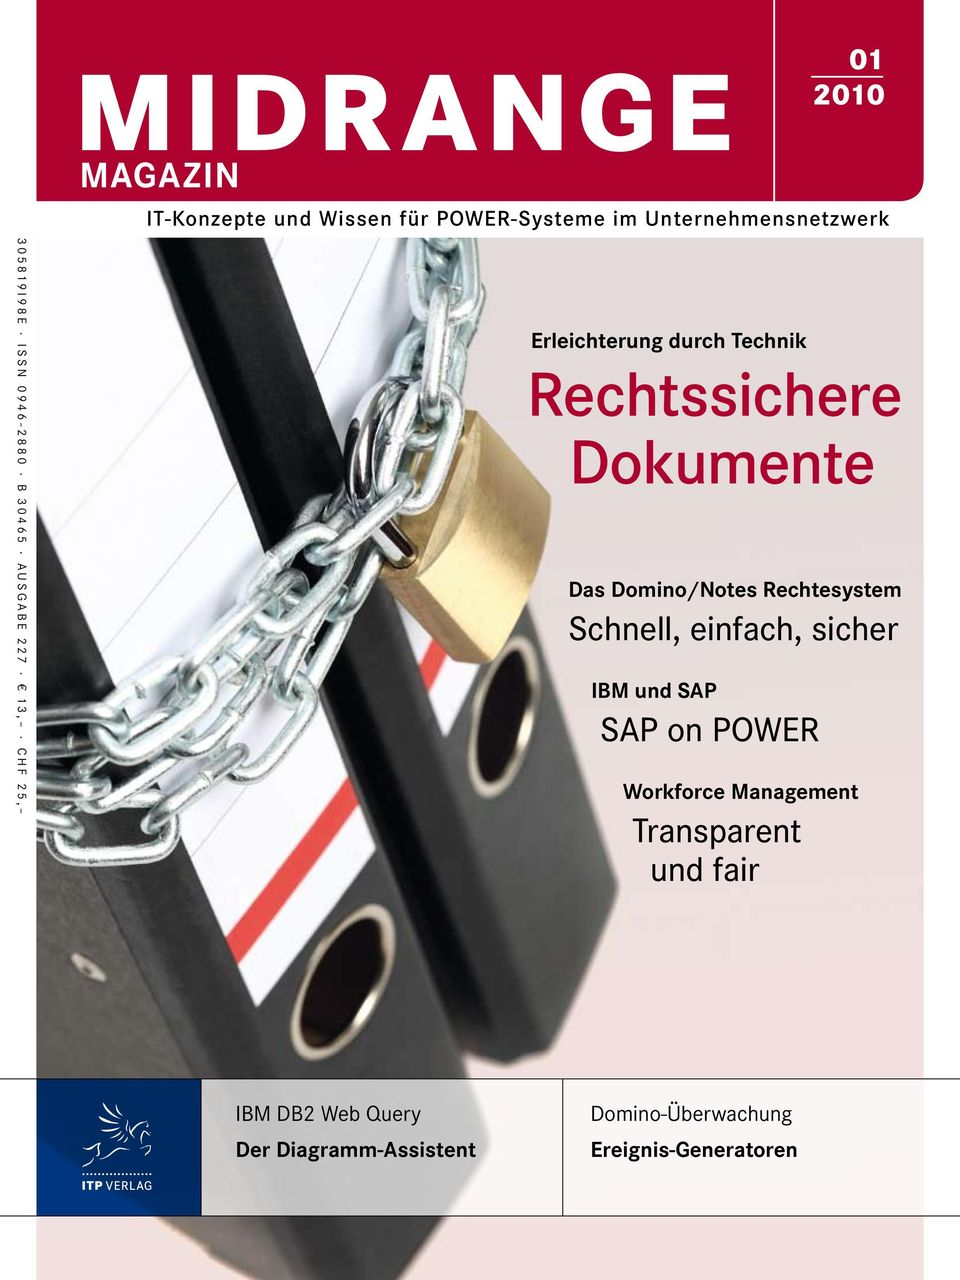 Das Domino/Notes Rechtesystem Schnell, einfach, sicher IBM und SAP SAP on POWER Workforce